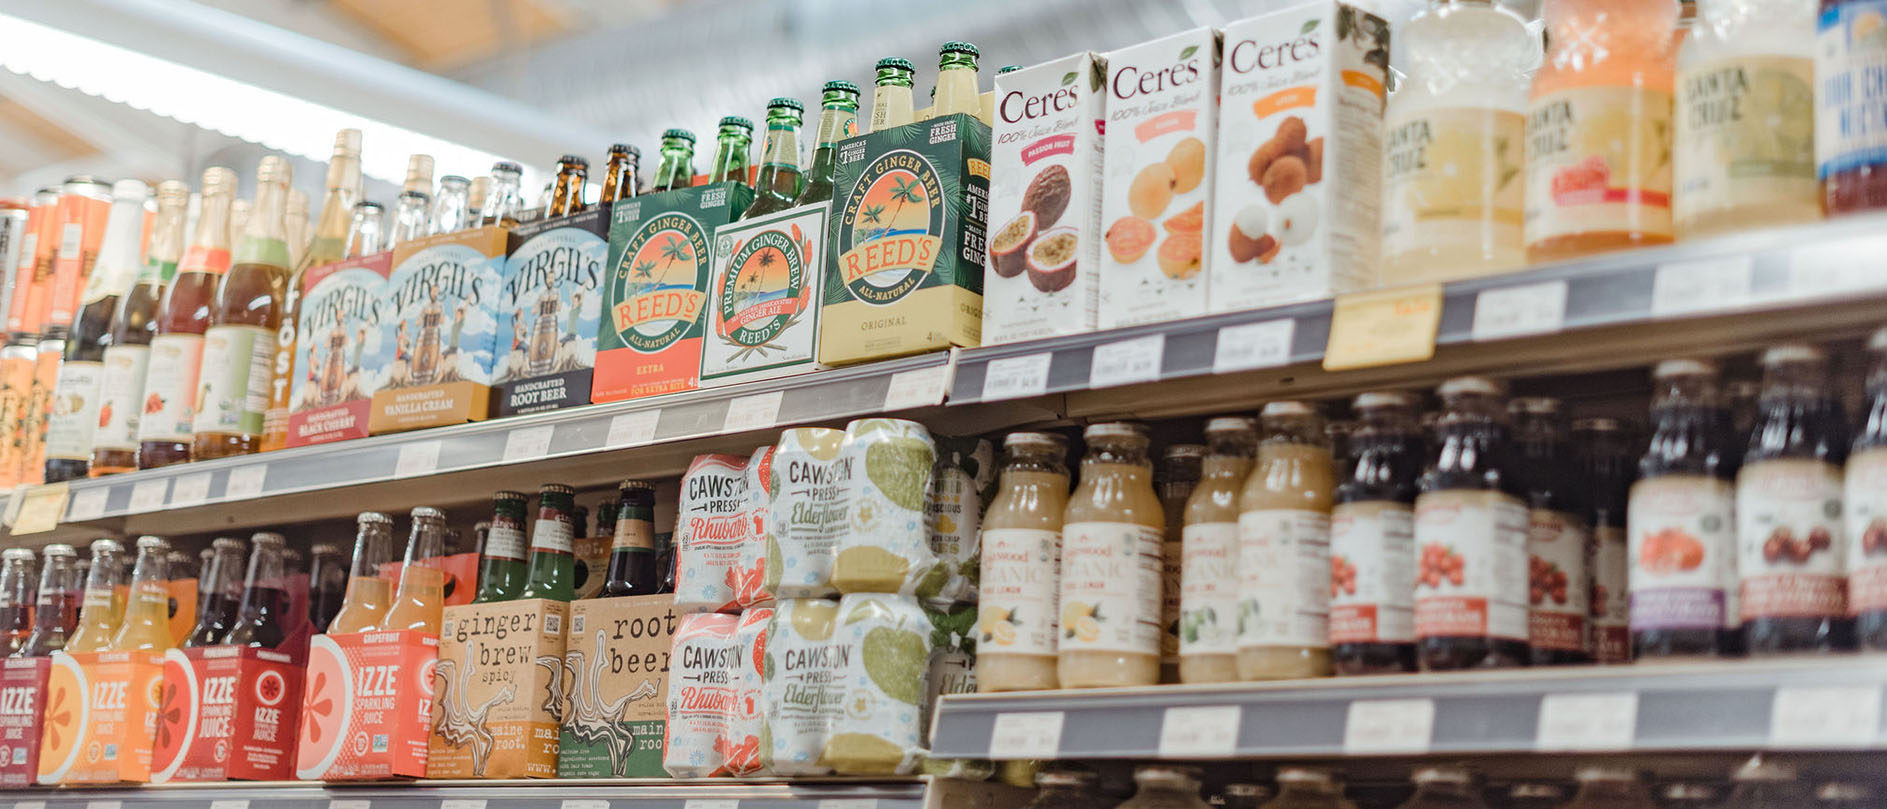 Beverage aisle in Hawthorne Valley Farm Store